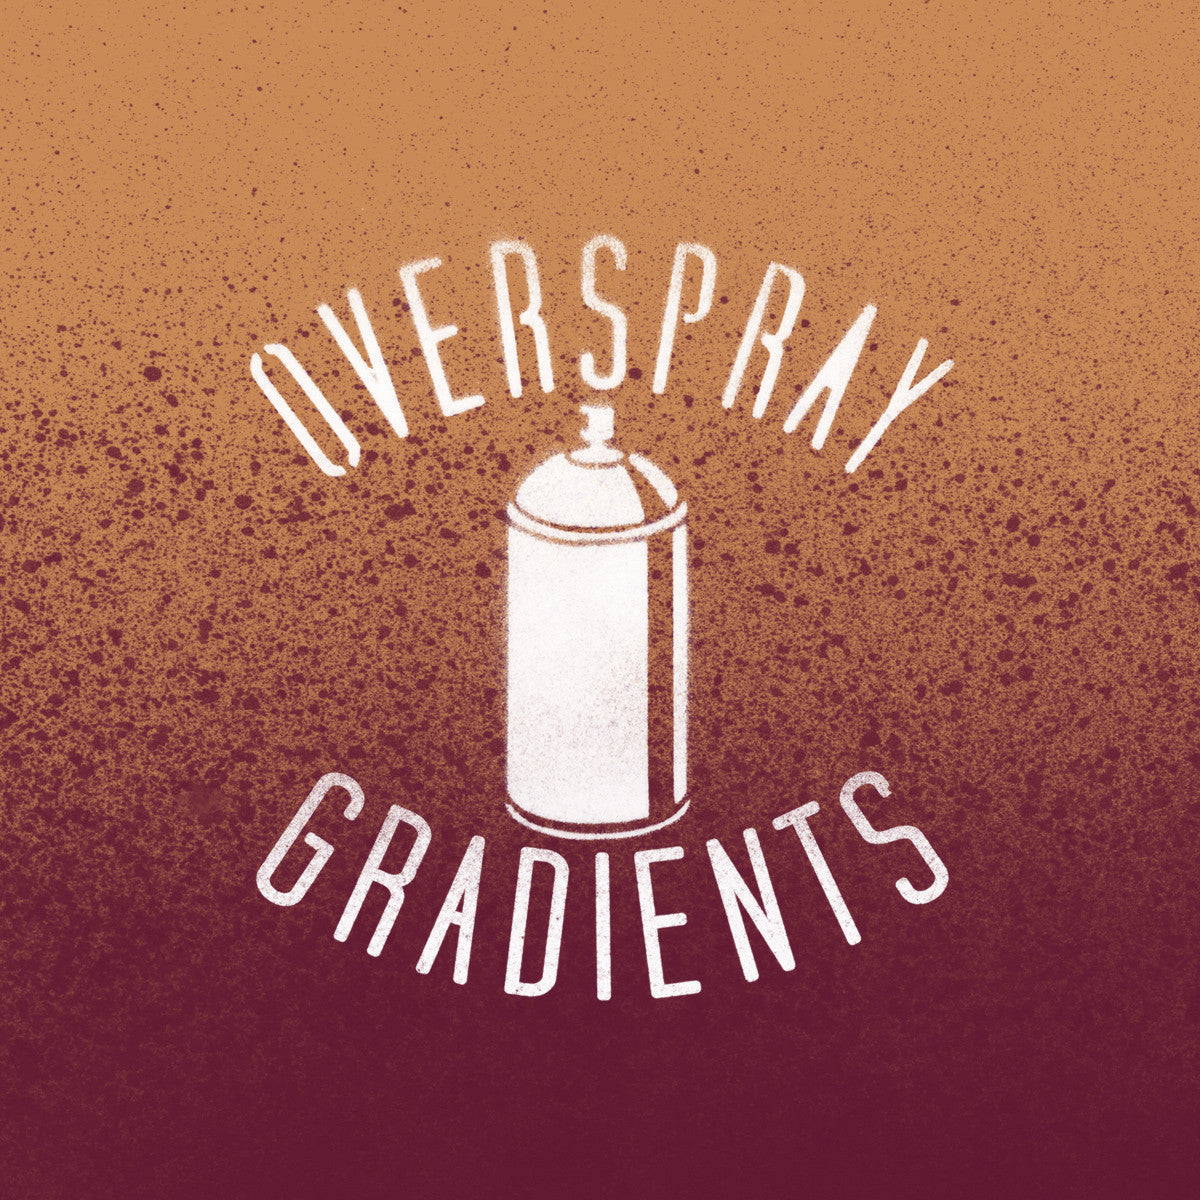 Overspray : Stencil Shapes - TheVectorLab